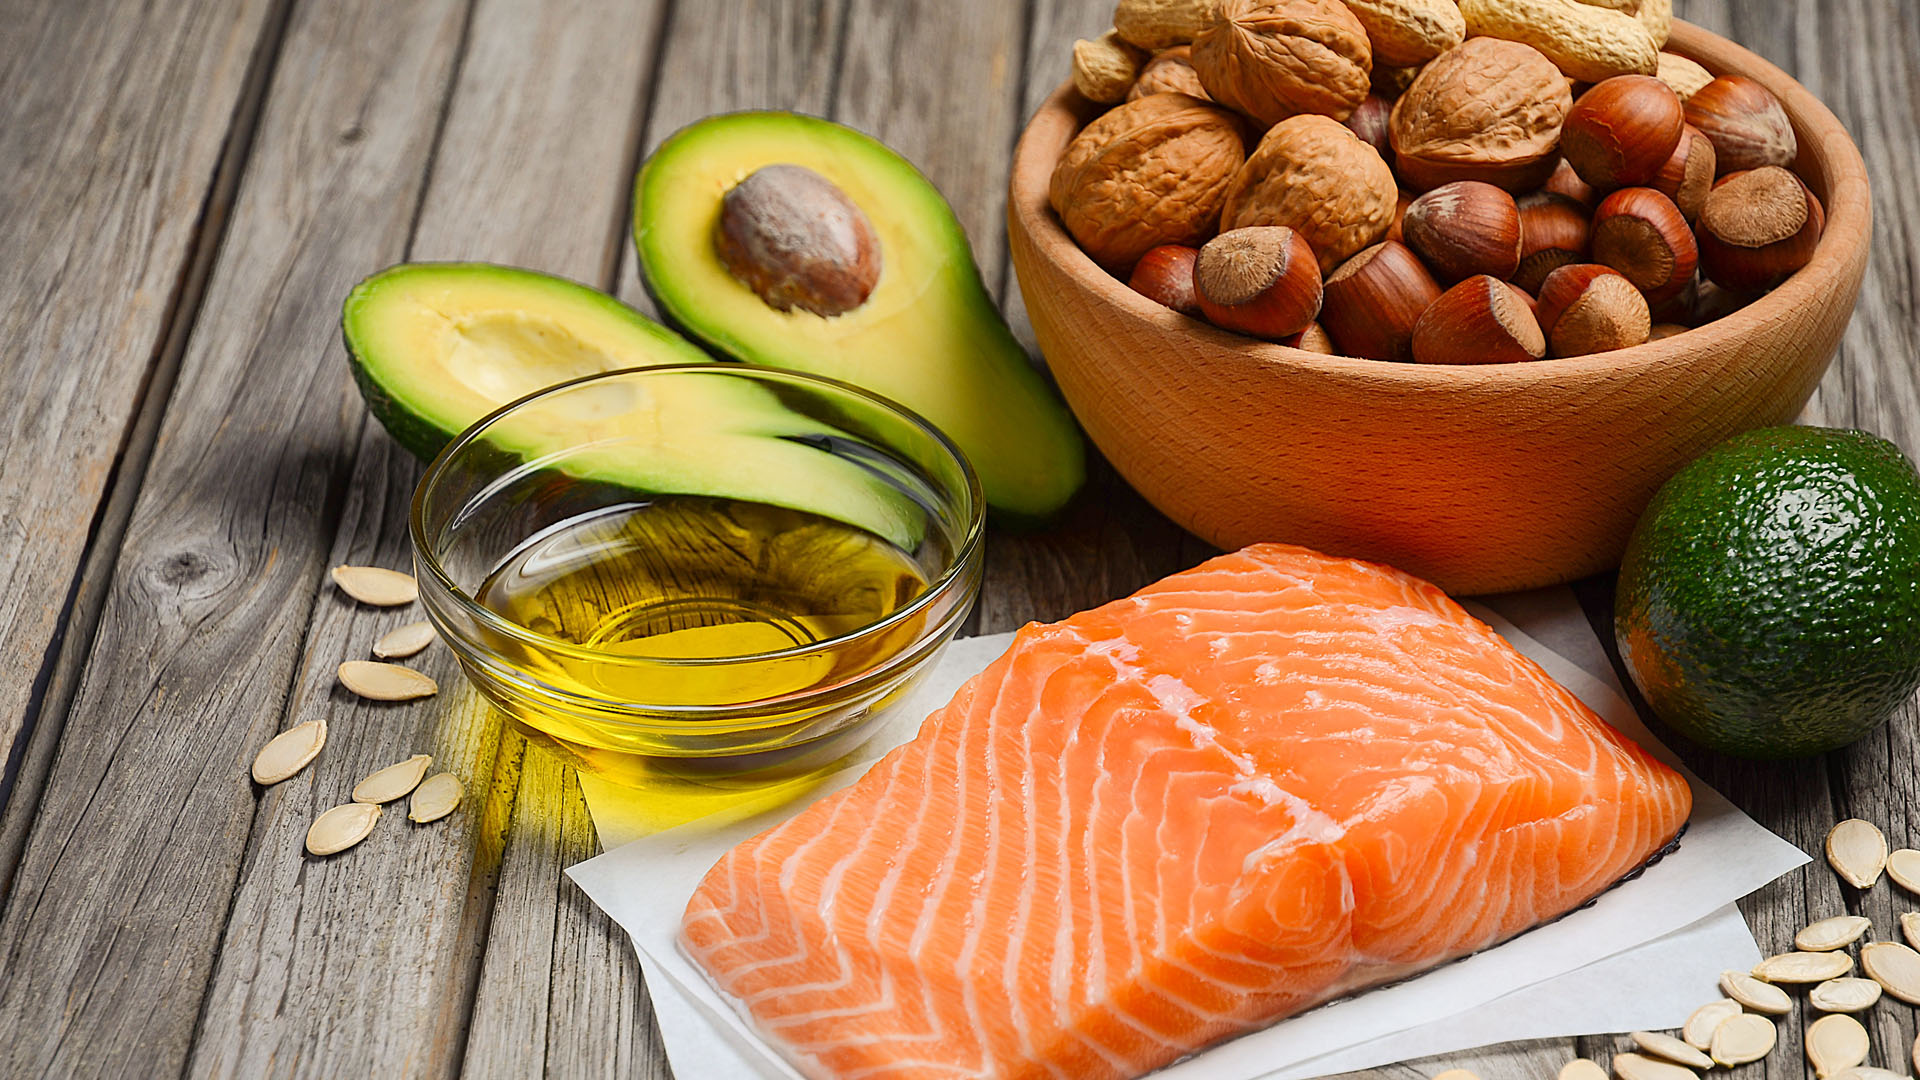 Selection of healthy fat sources: salmon, nuts, seeds, avocados and olive oil.